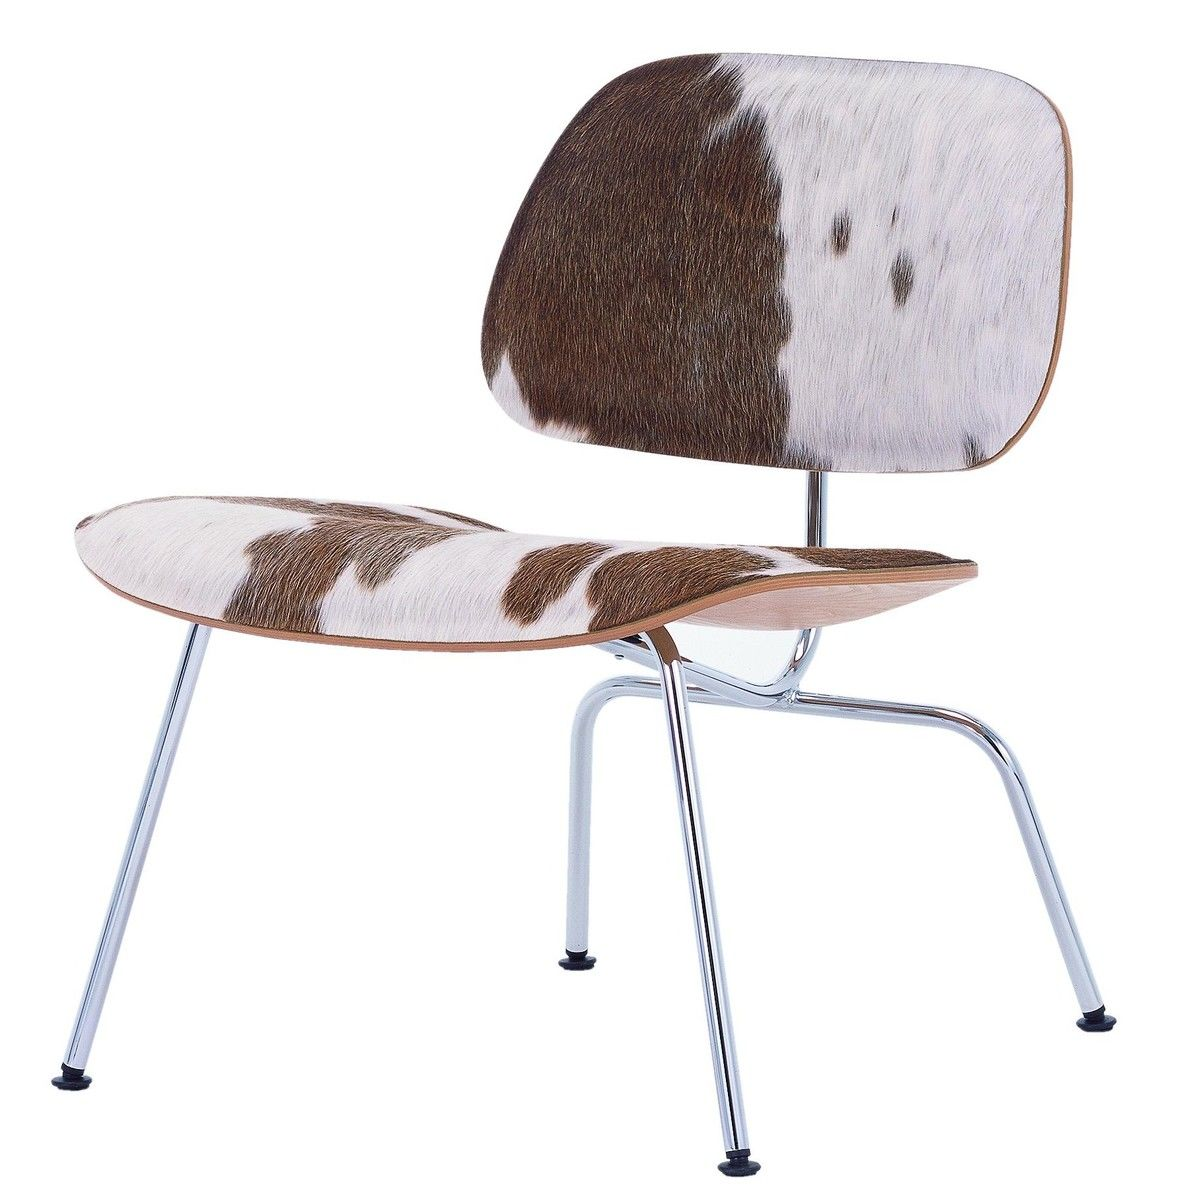 Eames Stuhl Weiß Lcm Eames Stuhl Kuhfell Vitra Ambientedirect